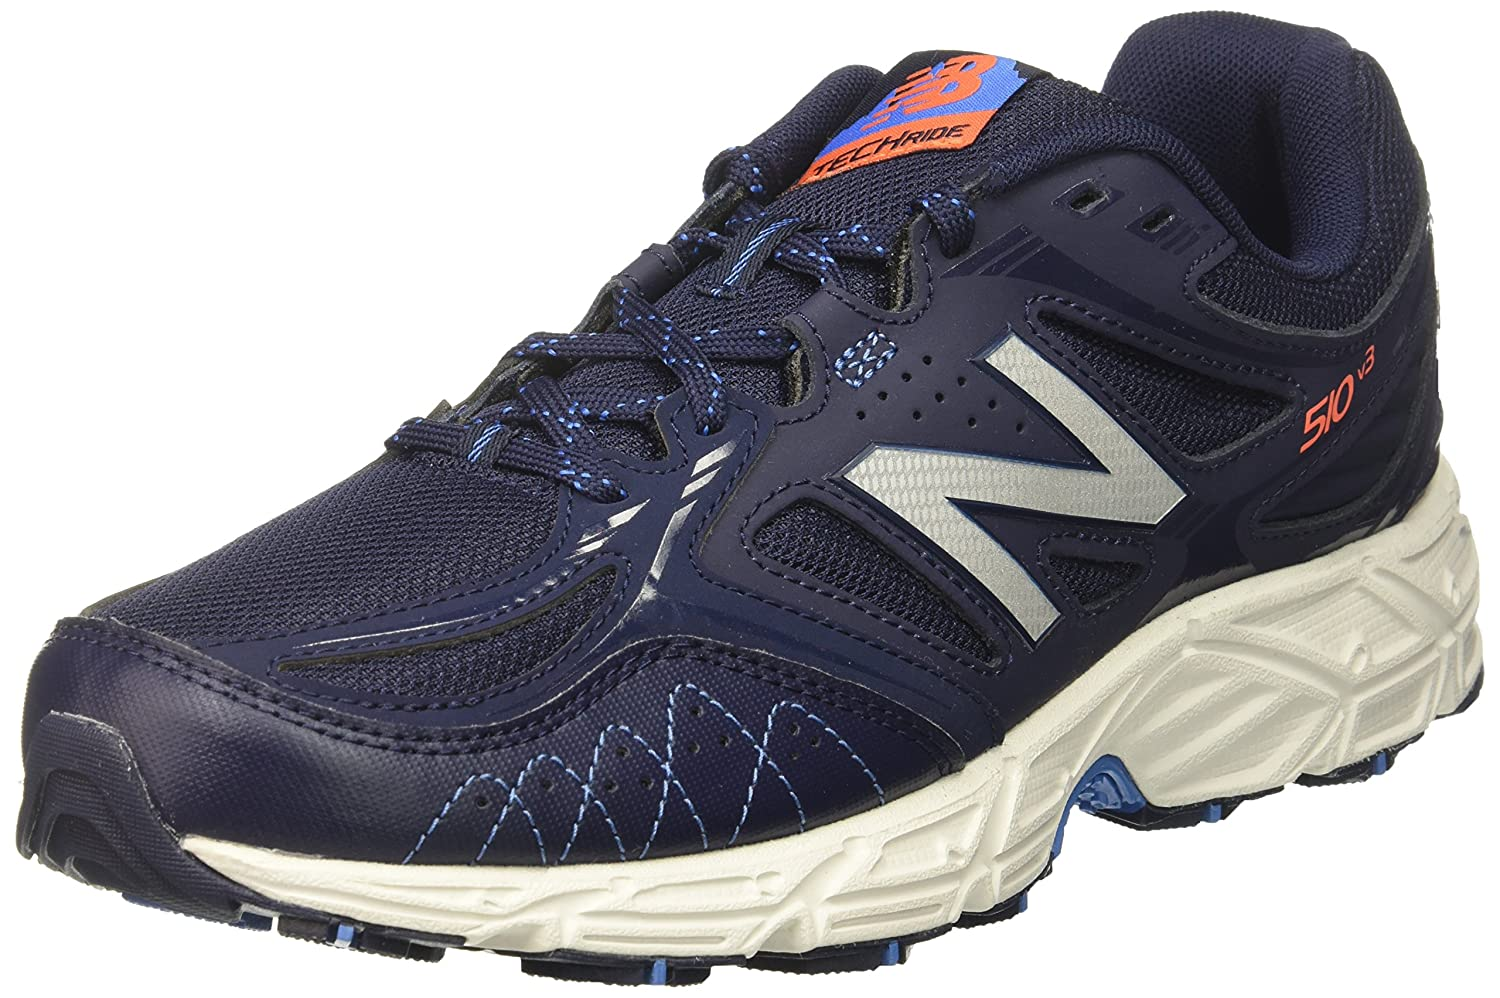 New Balance Women's WT510RS3 Trail Running Shoes B01CQVORQS 9.5 B(M) US|Nimbus Cloud